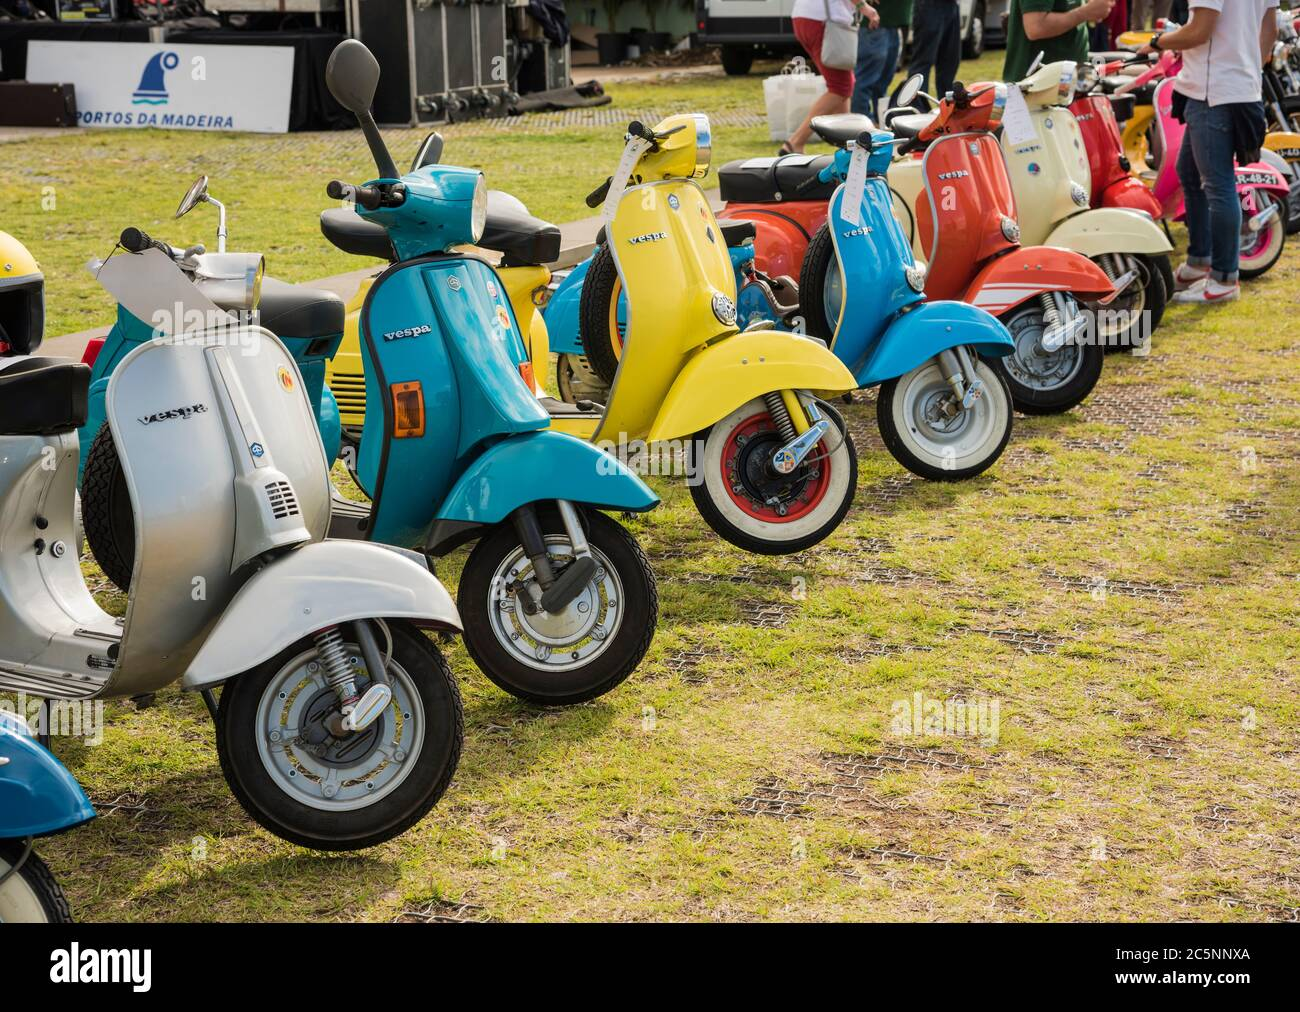 A Row Of Vintage Vespa Motor Scooters On Display At A Classic Motor Rally In Funchal Madeira Europe Stock Photo Alamy